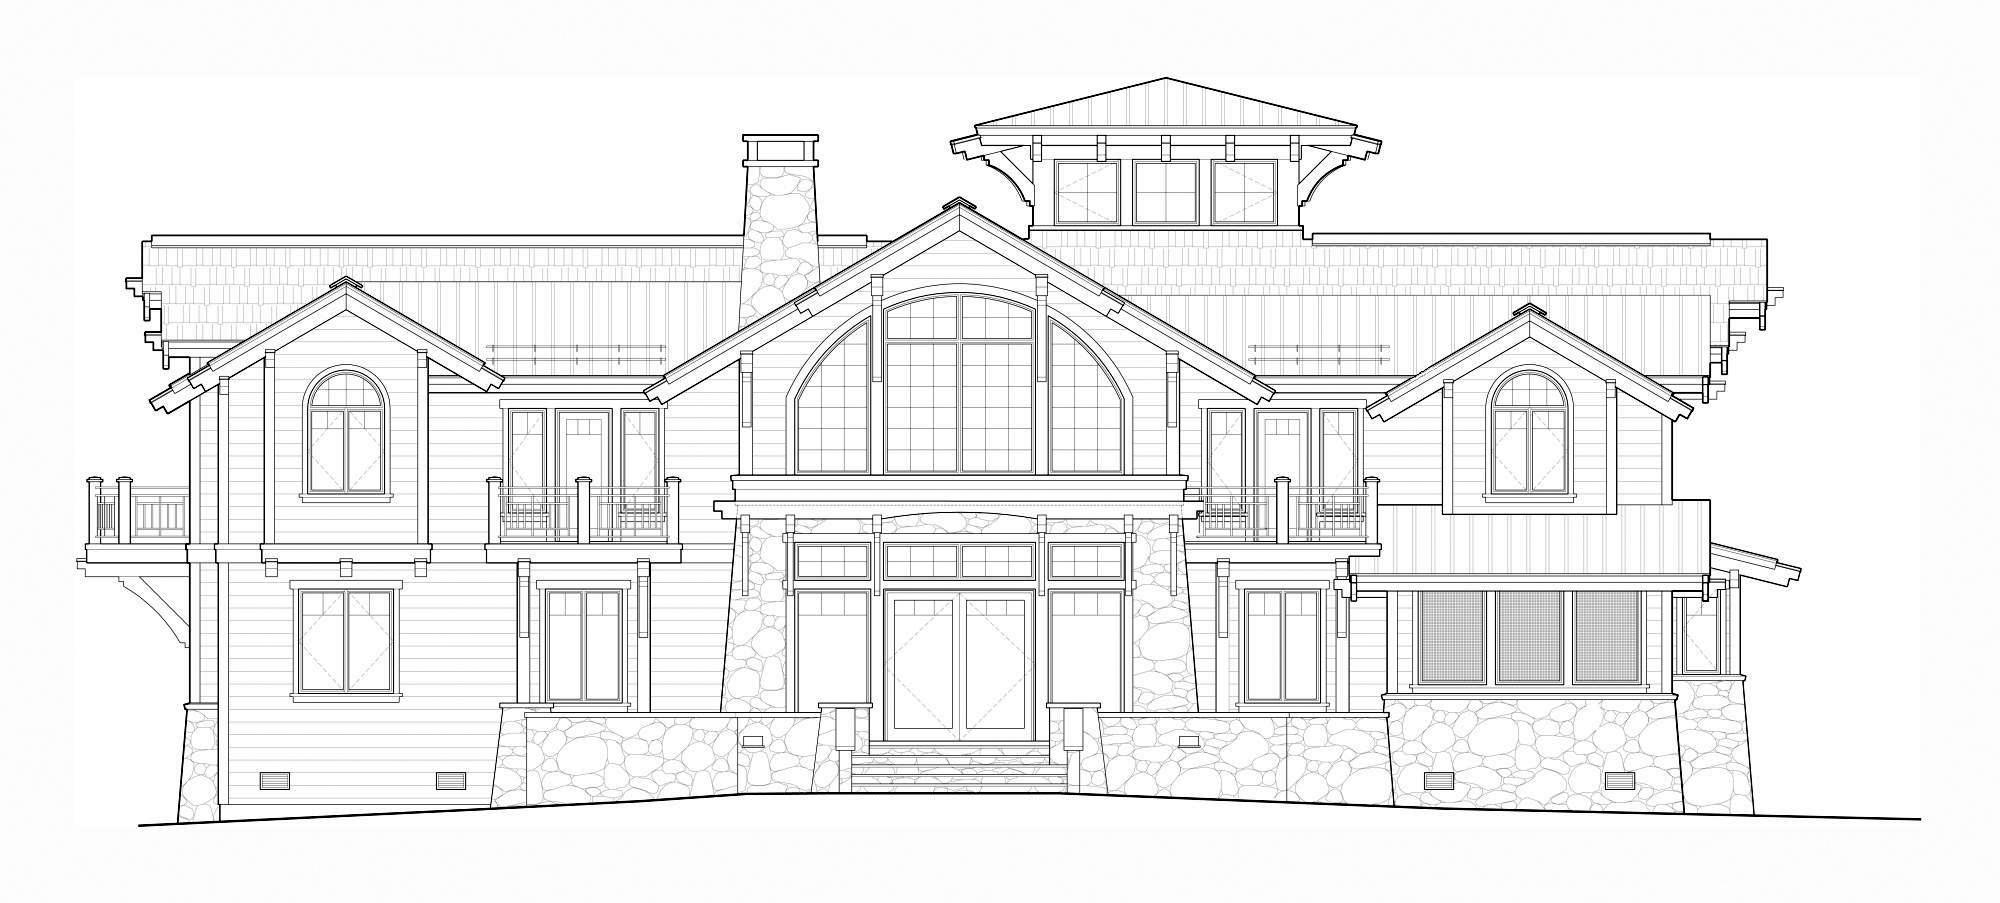 Floor Front Elevation Autocad : Idaho mountain architects hendricks architecture